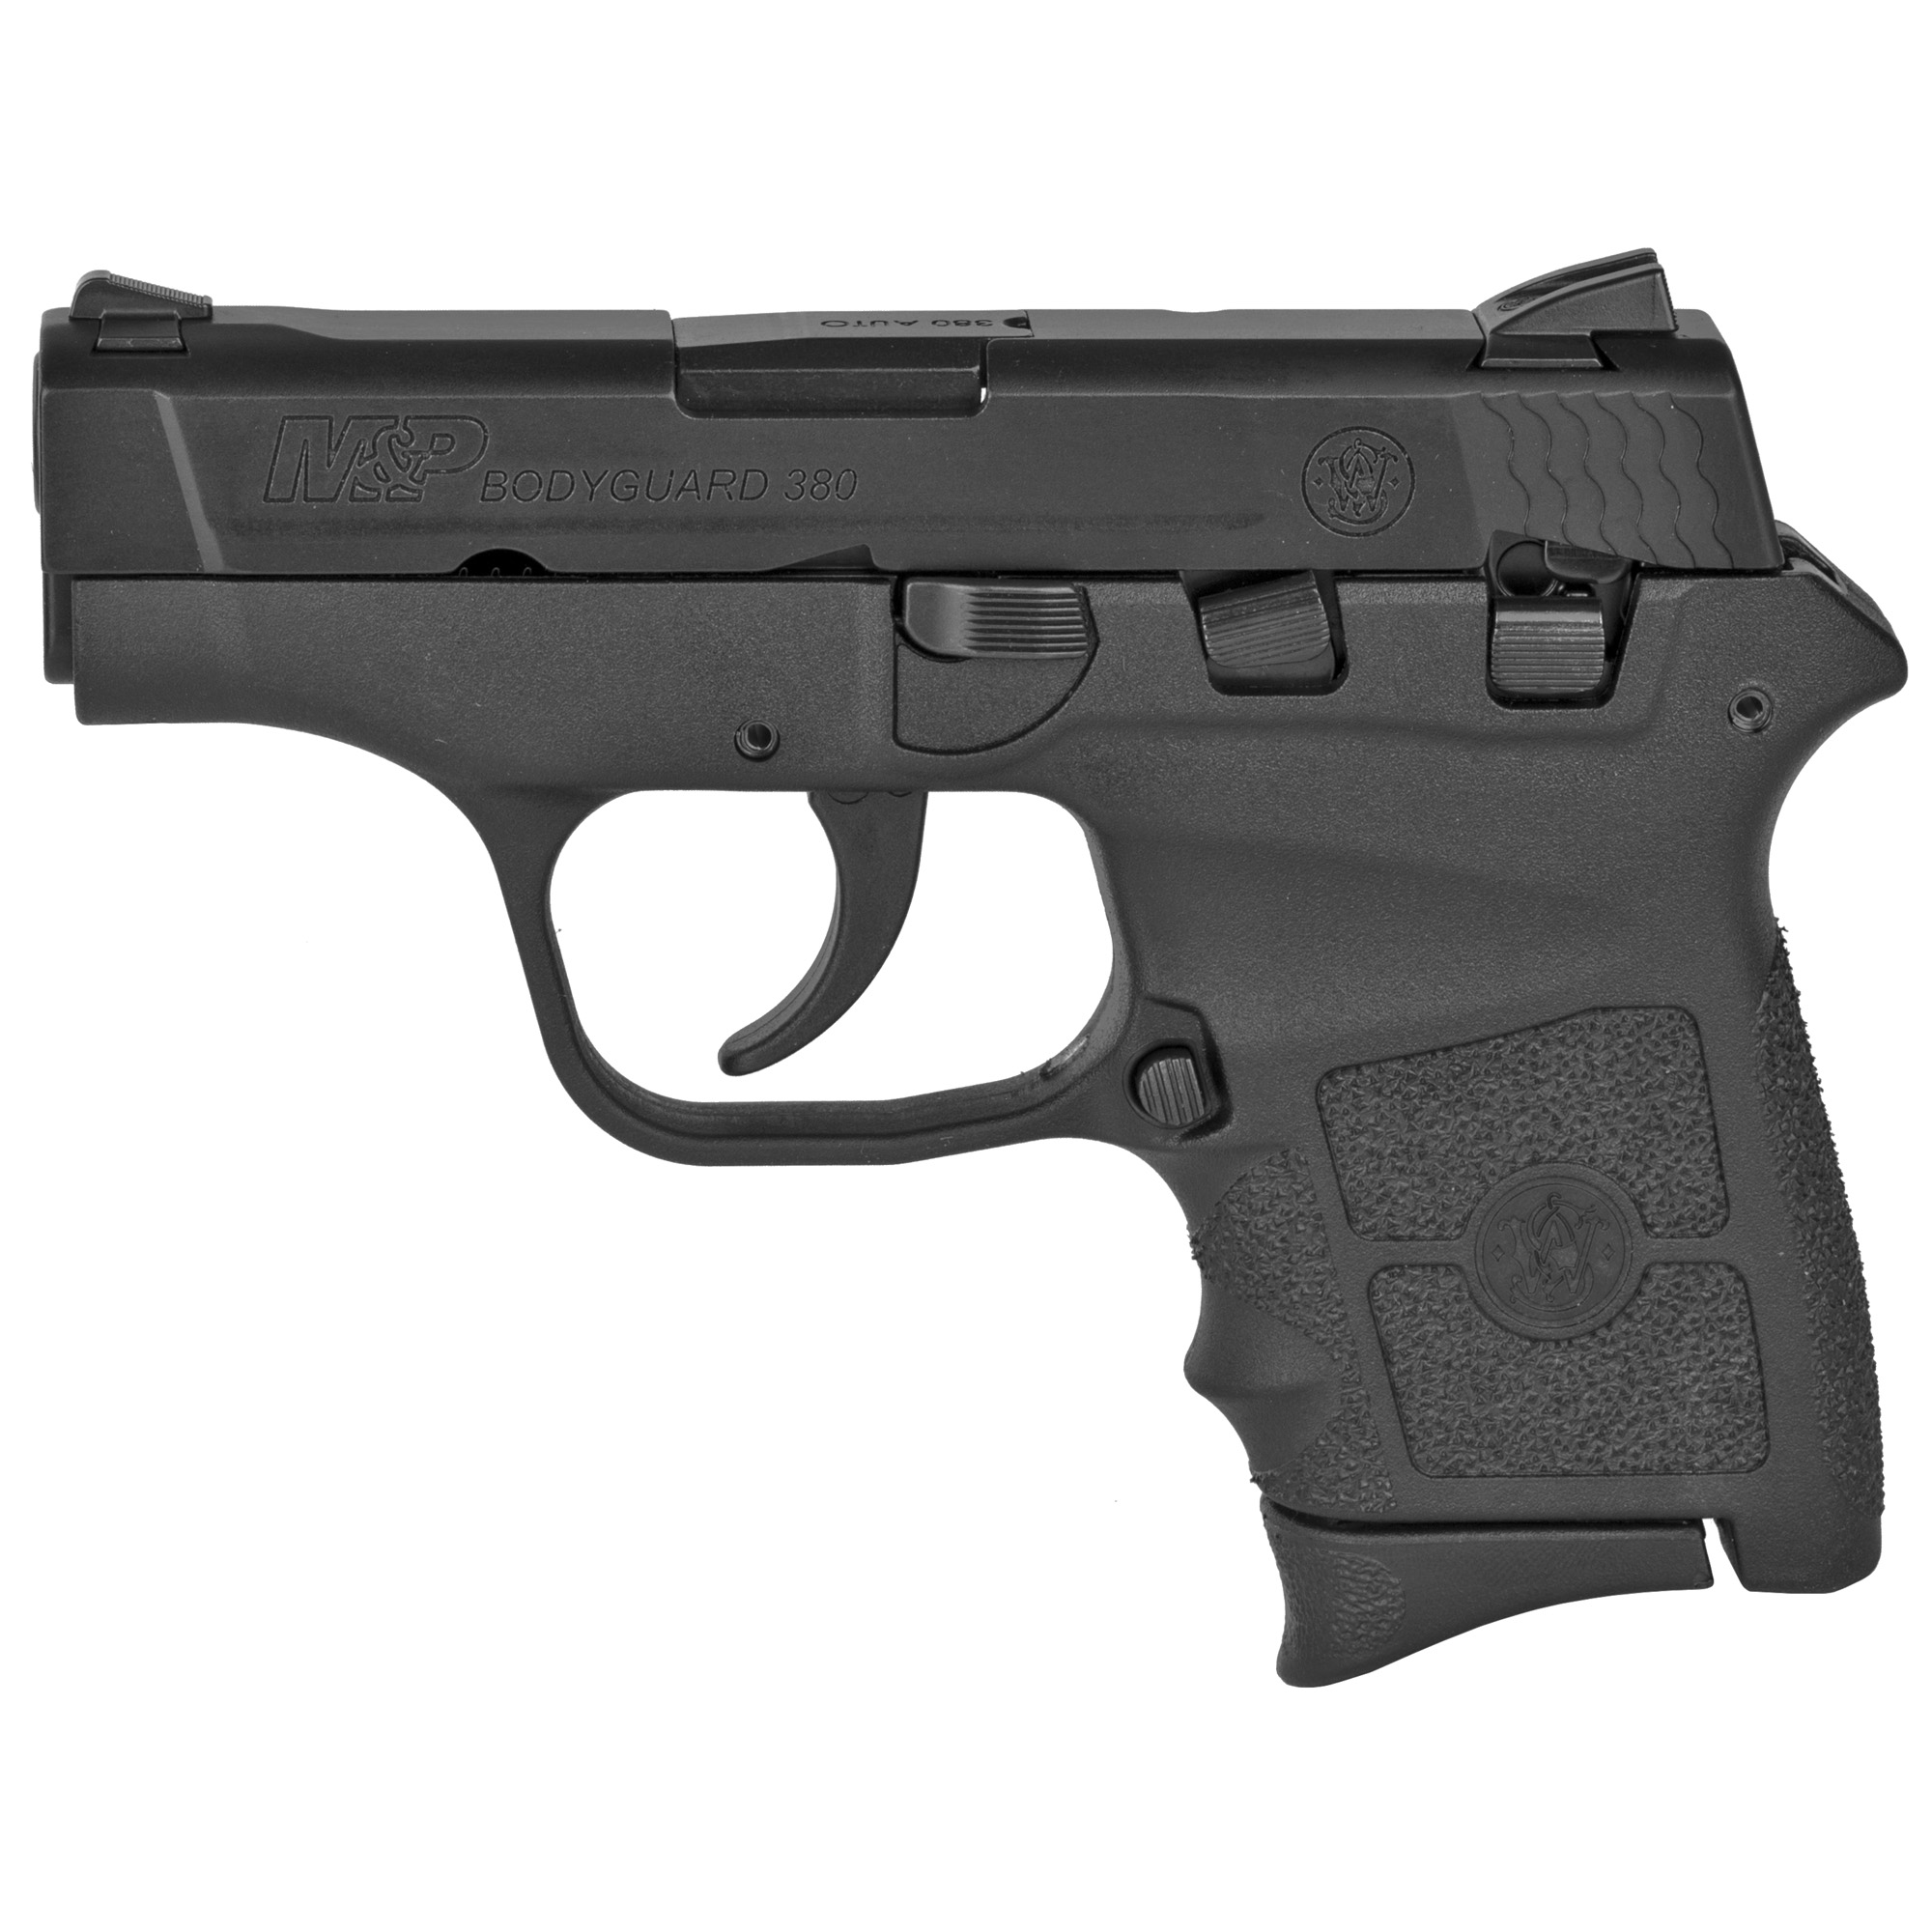 "Compact and sleek"" the M&P BODYGUARD 380 delivers personal protection in an easy-to-carry"" comfortable platform. Chambered for .380 ACP"" the lightweight pistol features a high-strength polymer frame with a black"" matte-coated stainless-steel slide and barrel. The new M&P BODYGUARD 380 retains original design features including a 2 3/4-inch barrel"" which contributes to an overall length of 5 1/4 inches and an unloaded weight of only 12.3 ounces making it perfectly suited for concealed carry. Lightweight"" and simple to use - nothing protects like a BODYGUARD. Includes two magazines. One finger groove and one flat butt plate."